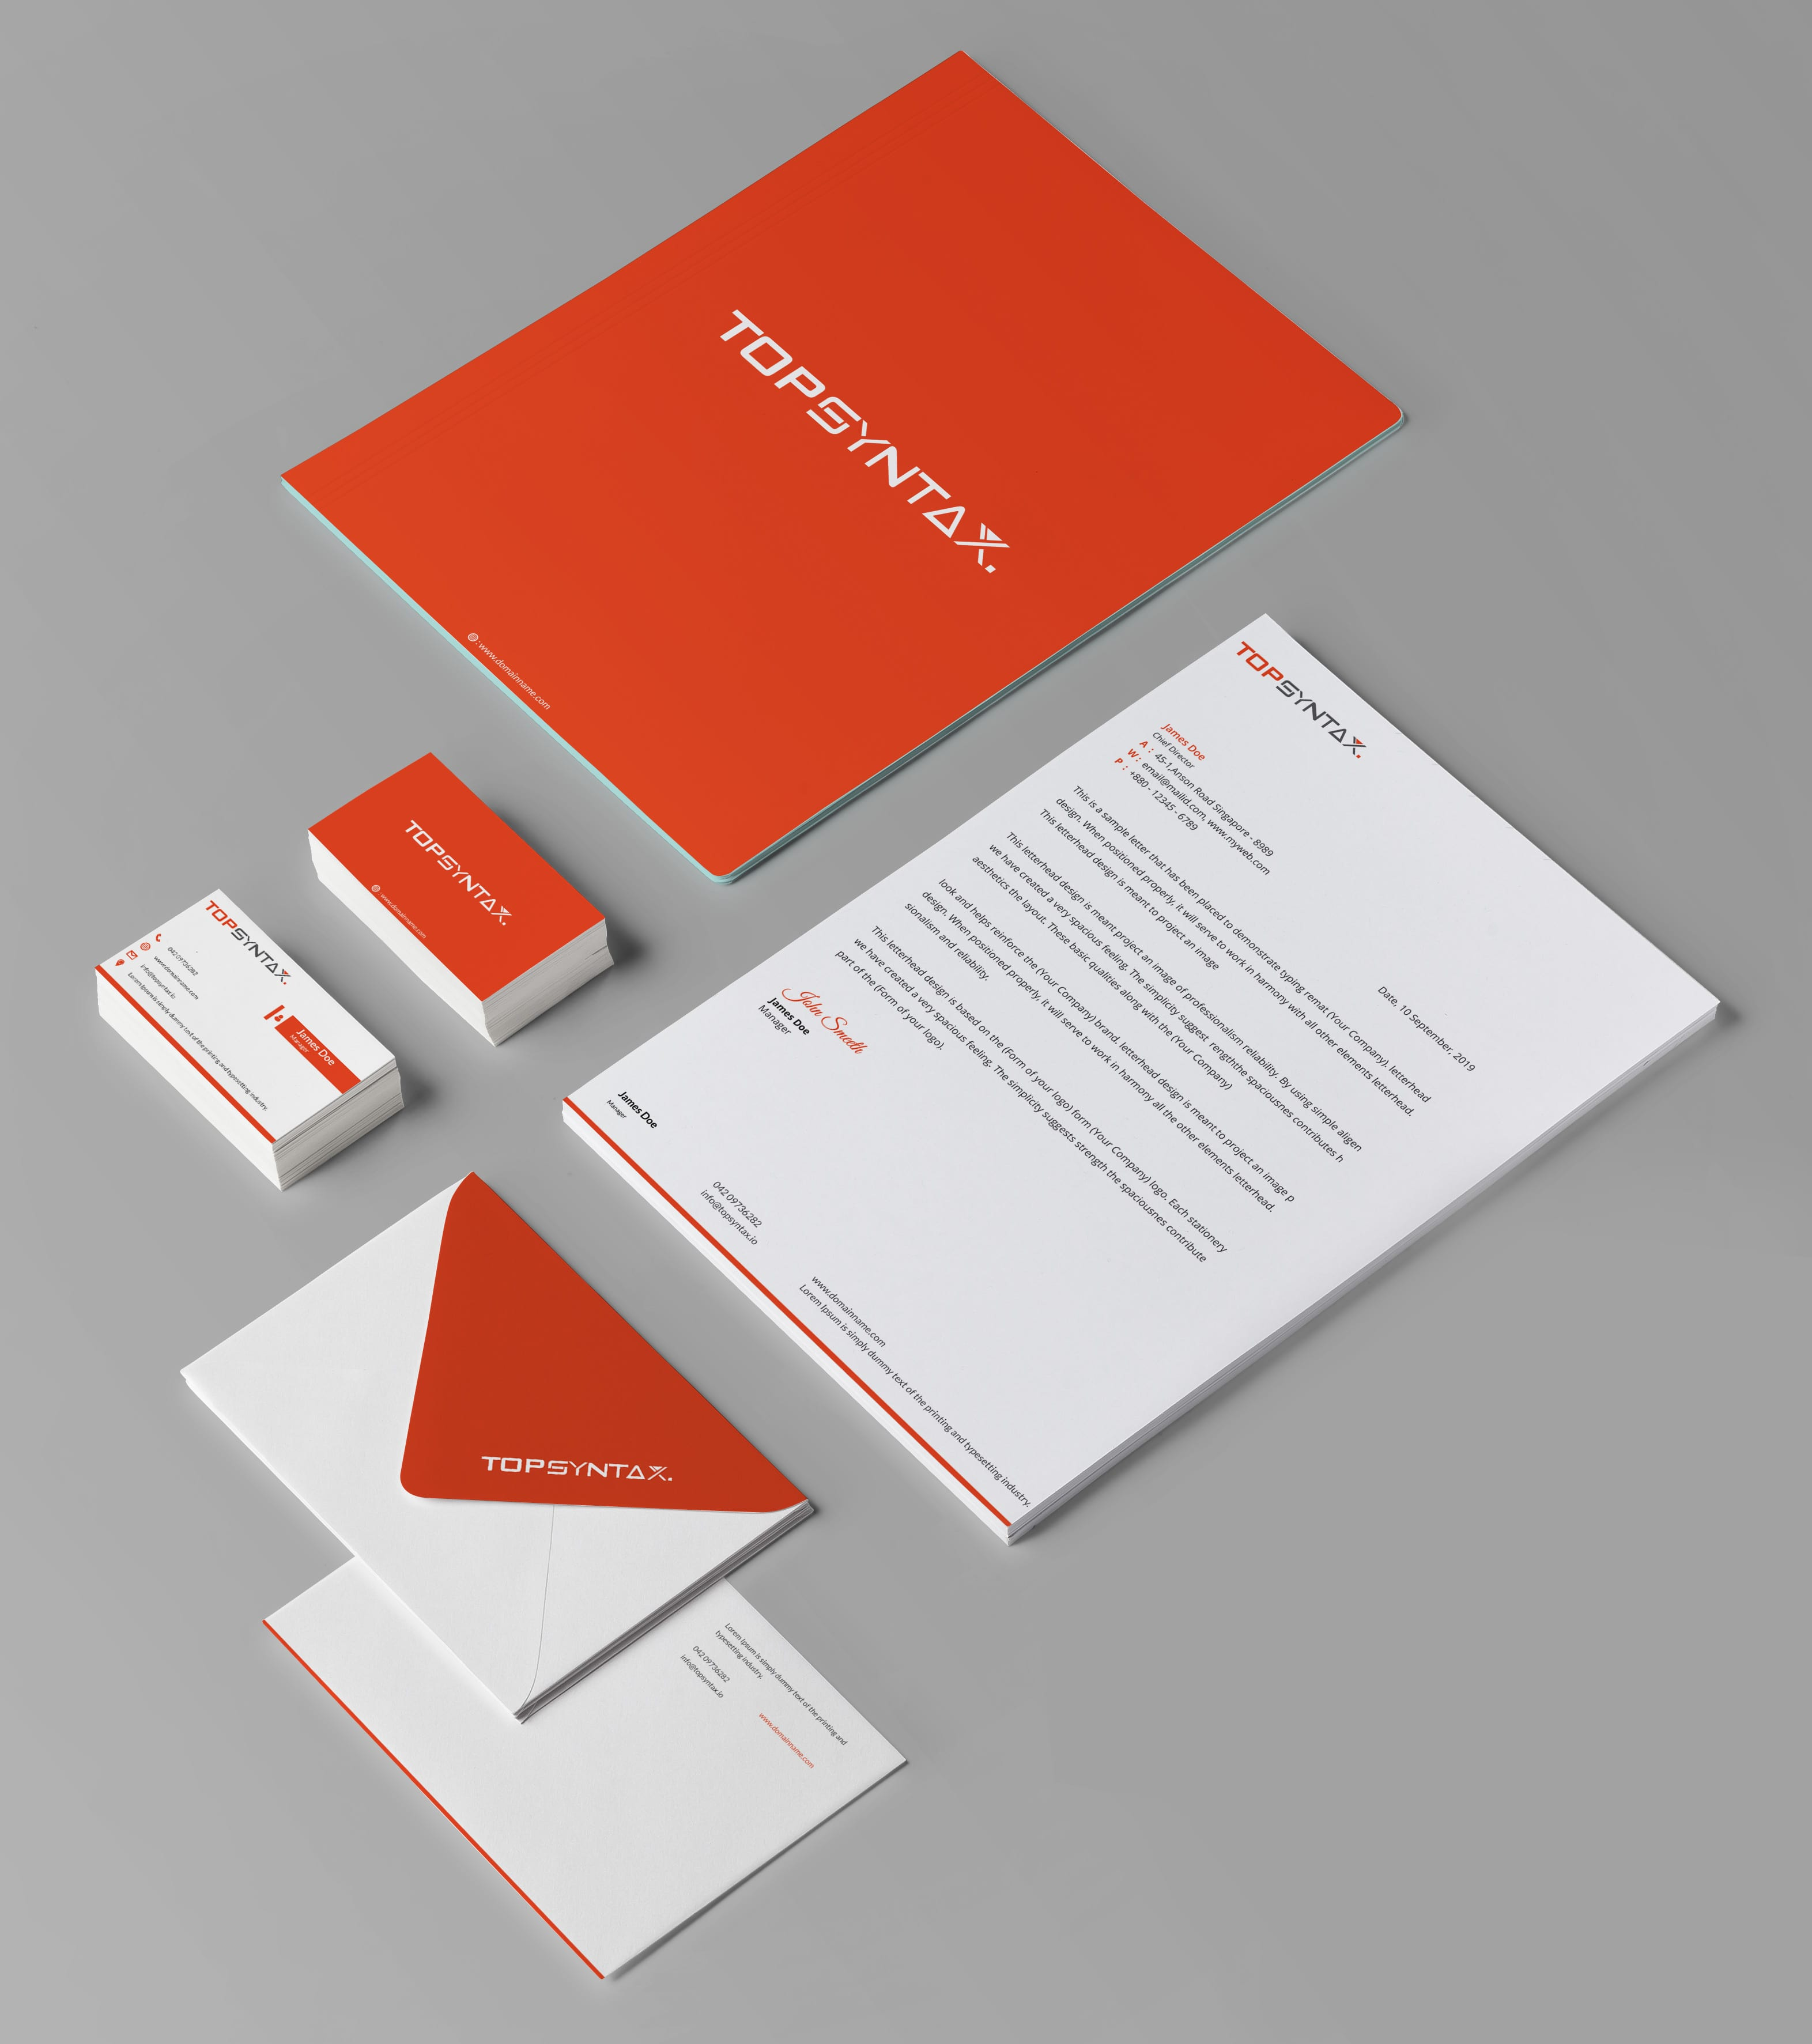 Top Syntax Stationary Complete Set